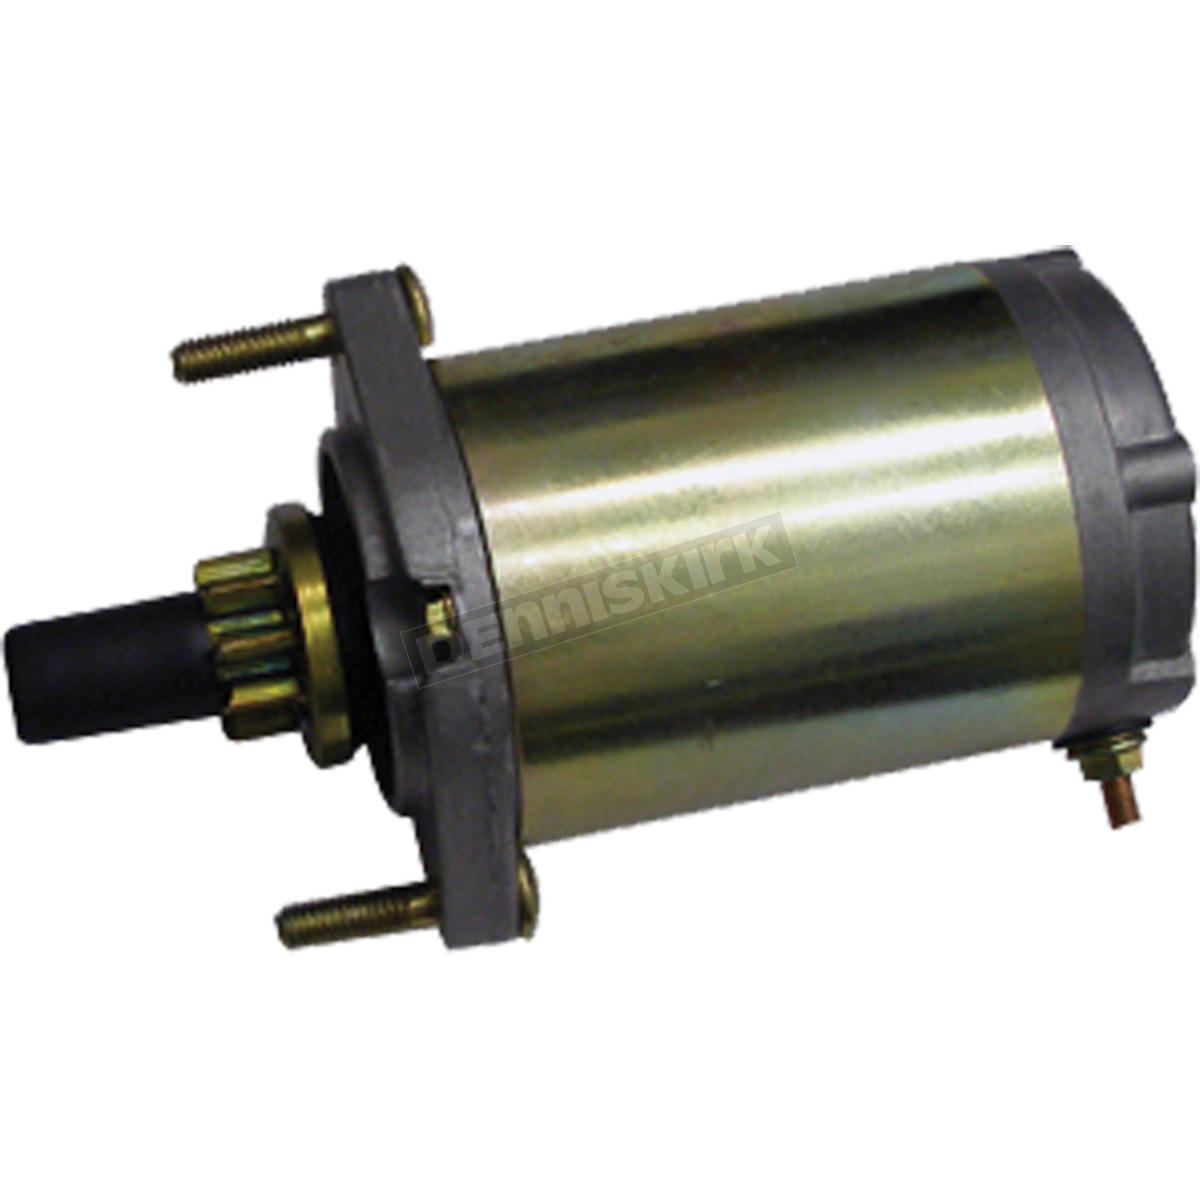 Sports parts inc starter motor sm 01211 snowmobile for Nhd inc motor starter